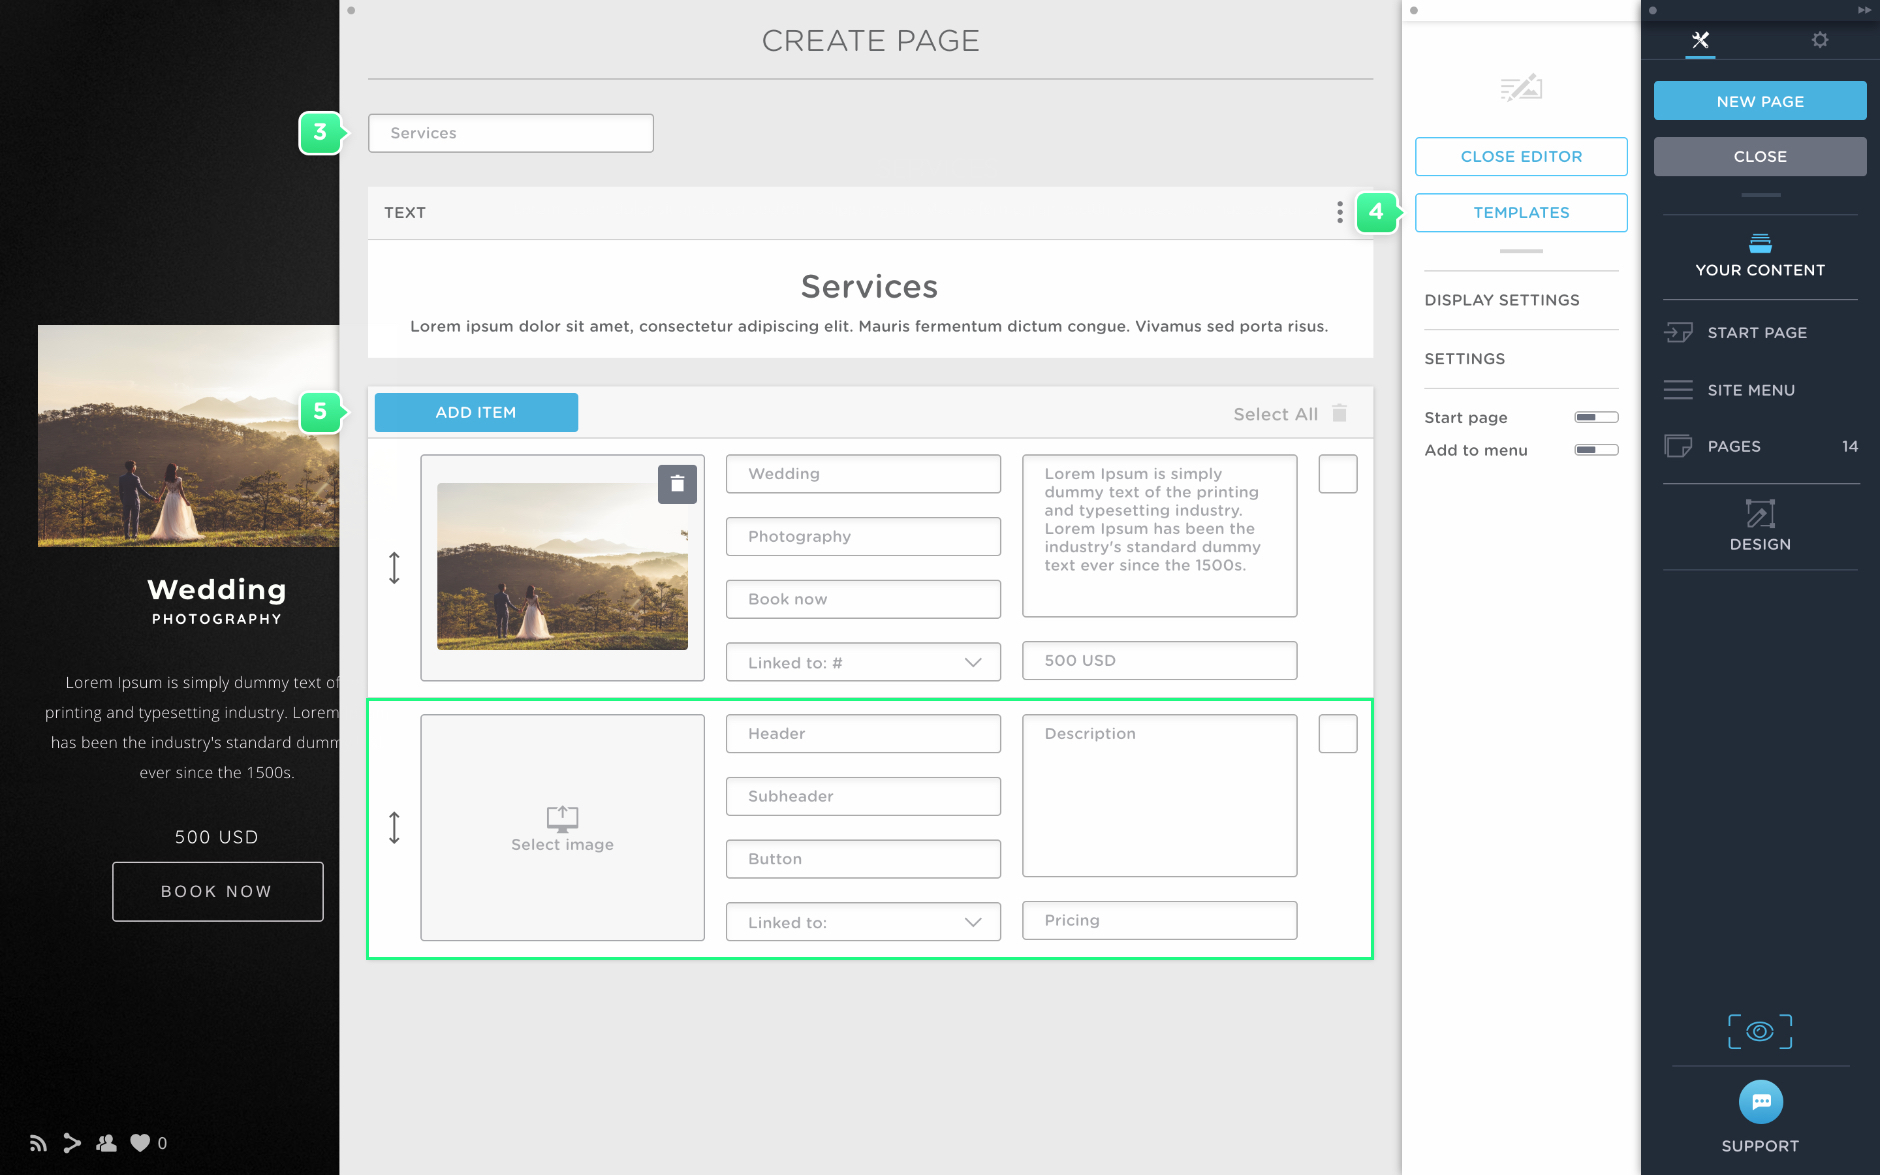 Create a service page in Portfoliobox